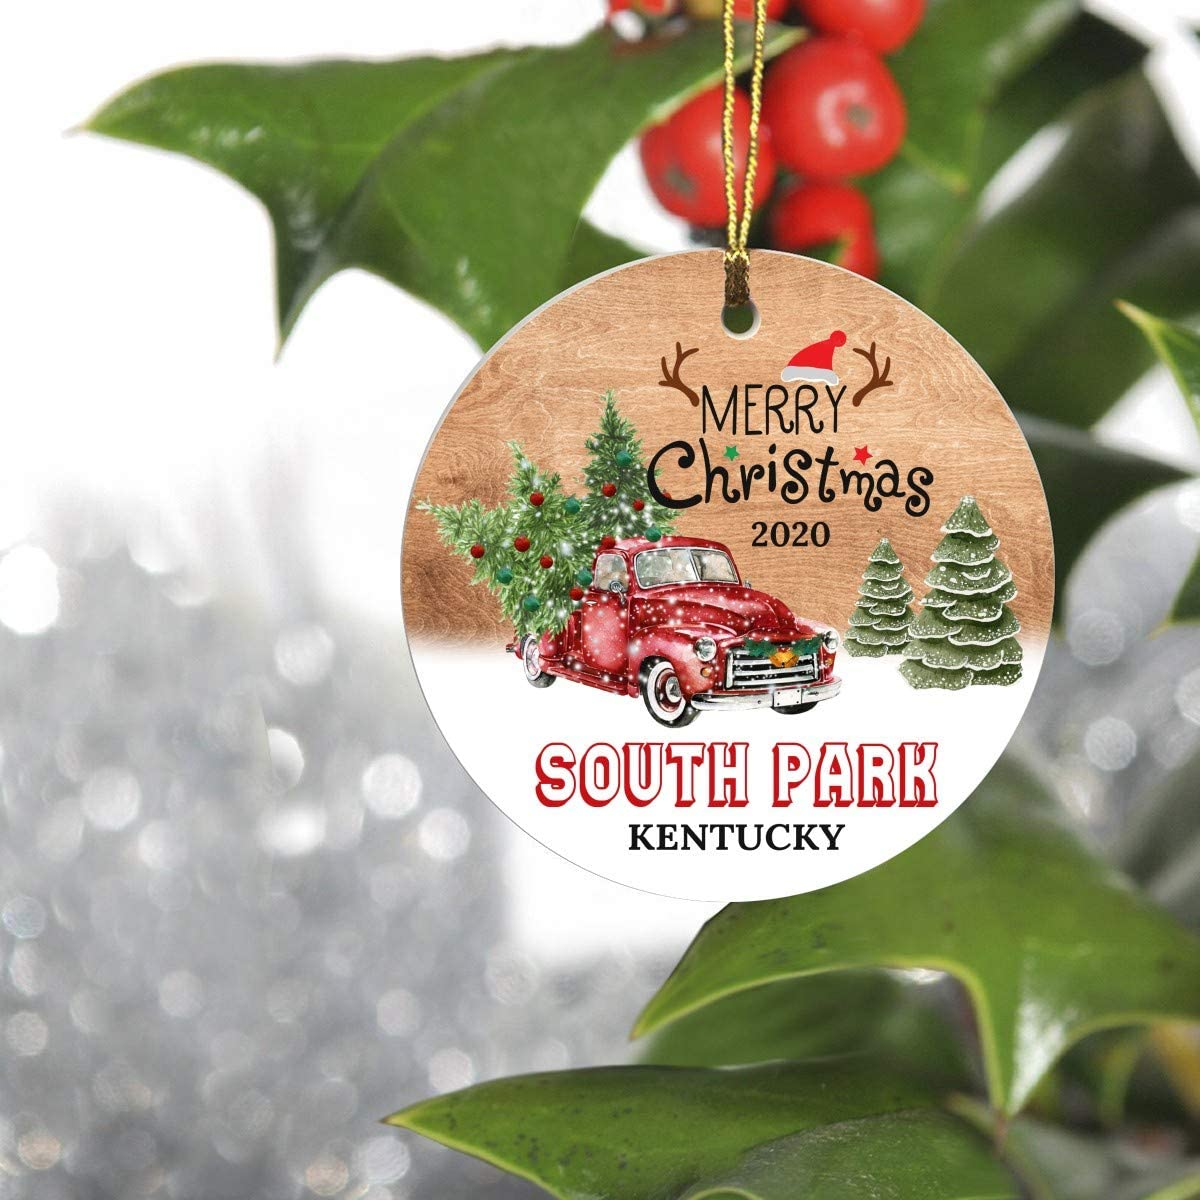 South Park Christmas 2020 Amazon.com: Merry Christmas Tree Decorations Ornaments 2020